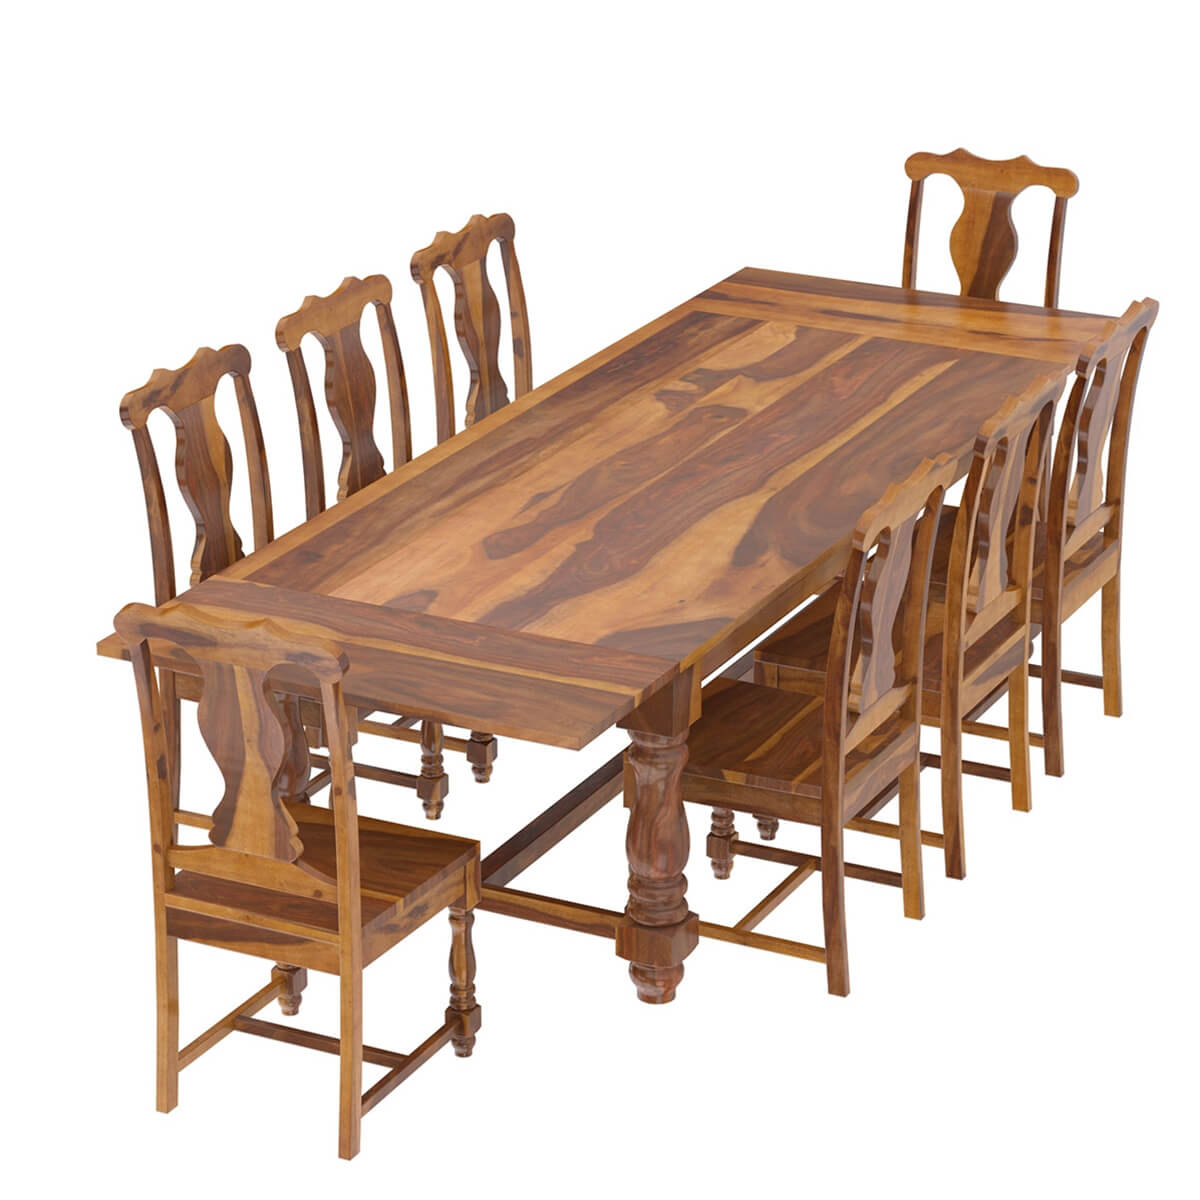 Extendable Dining Set In Rustic Brushed Solid Oak: Rustic Solid Wood Extendable Dining Table & Chair Set